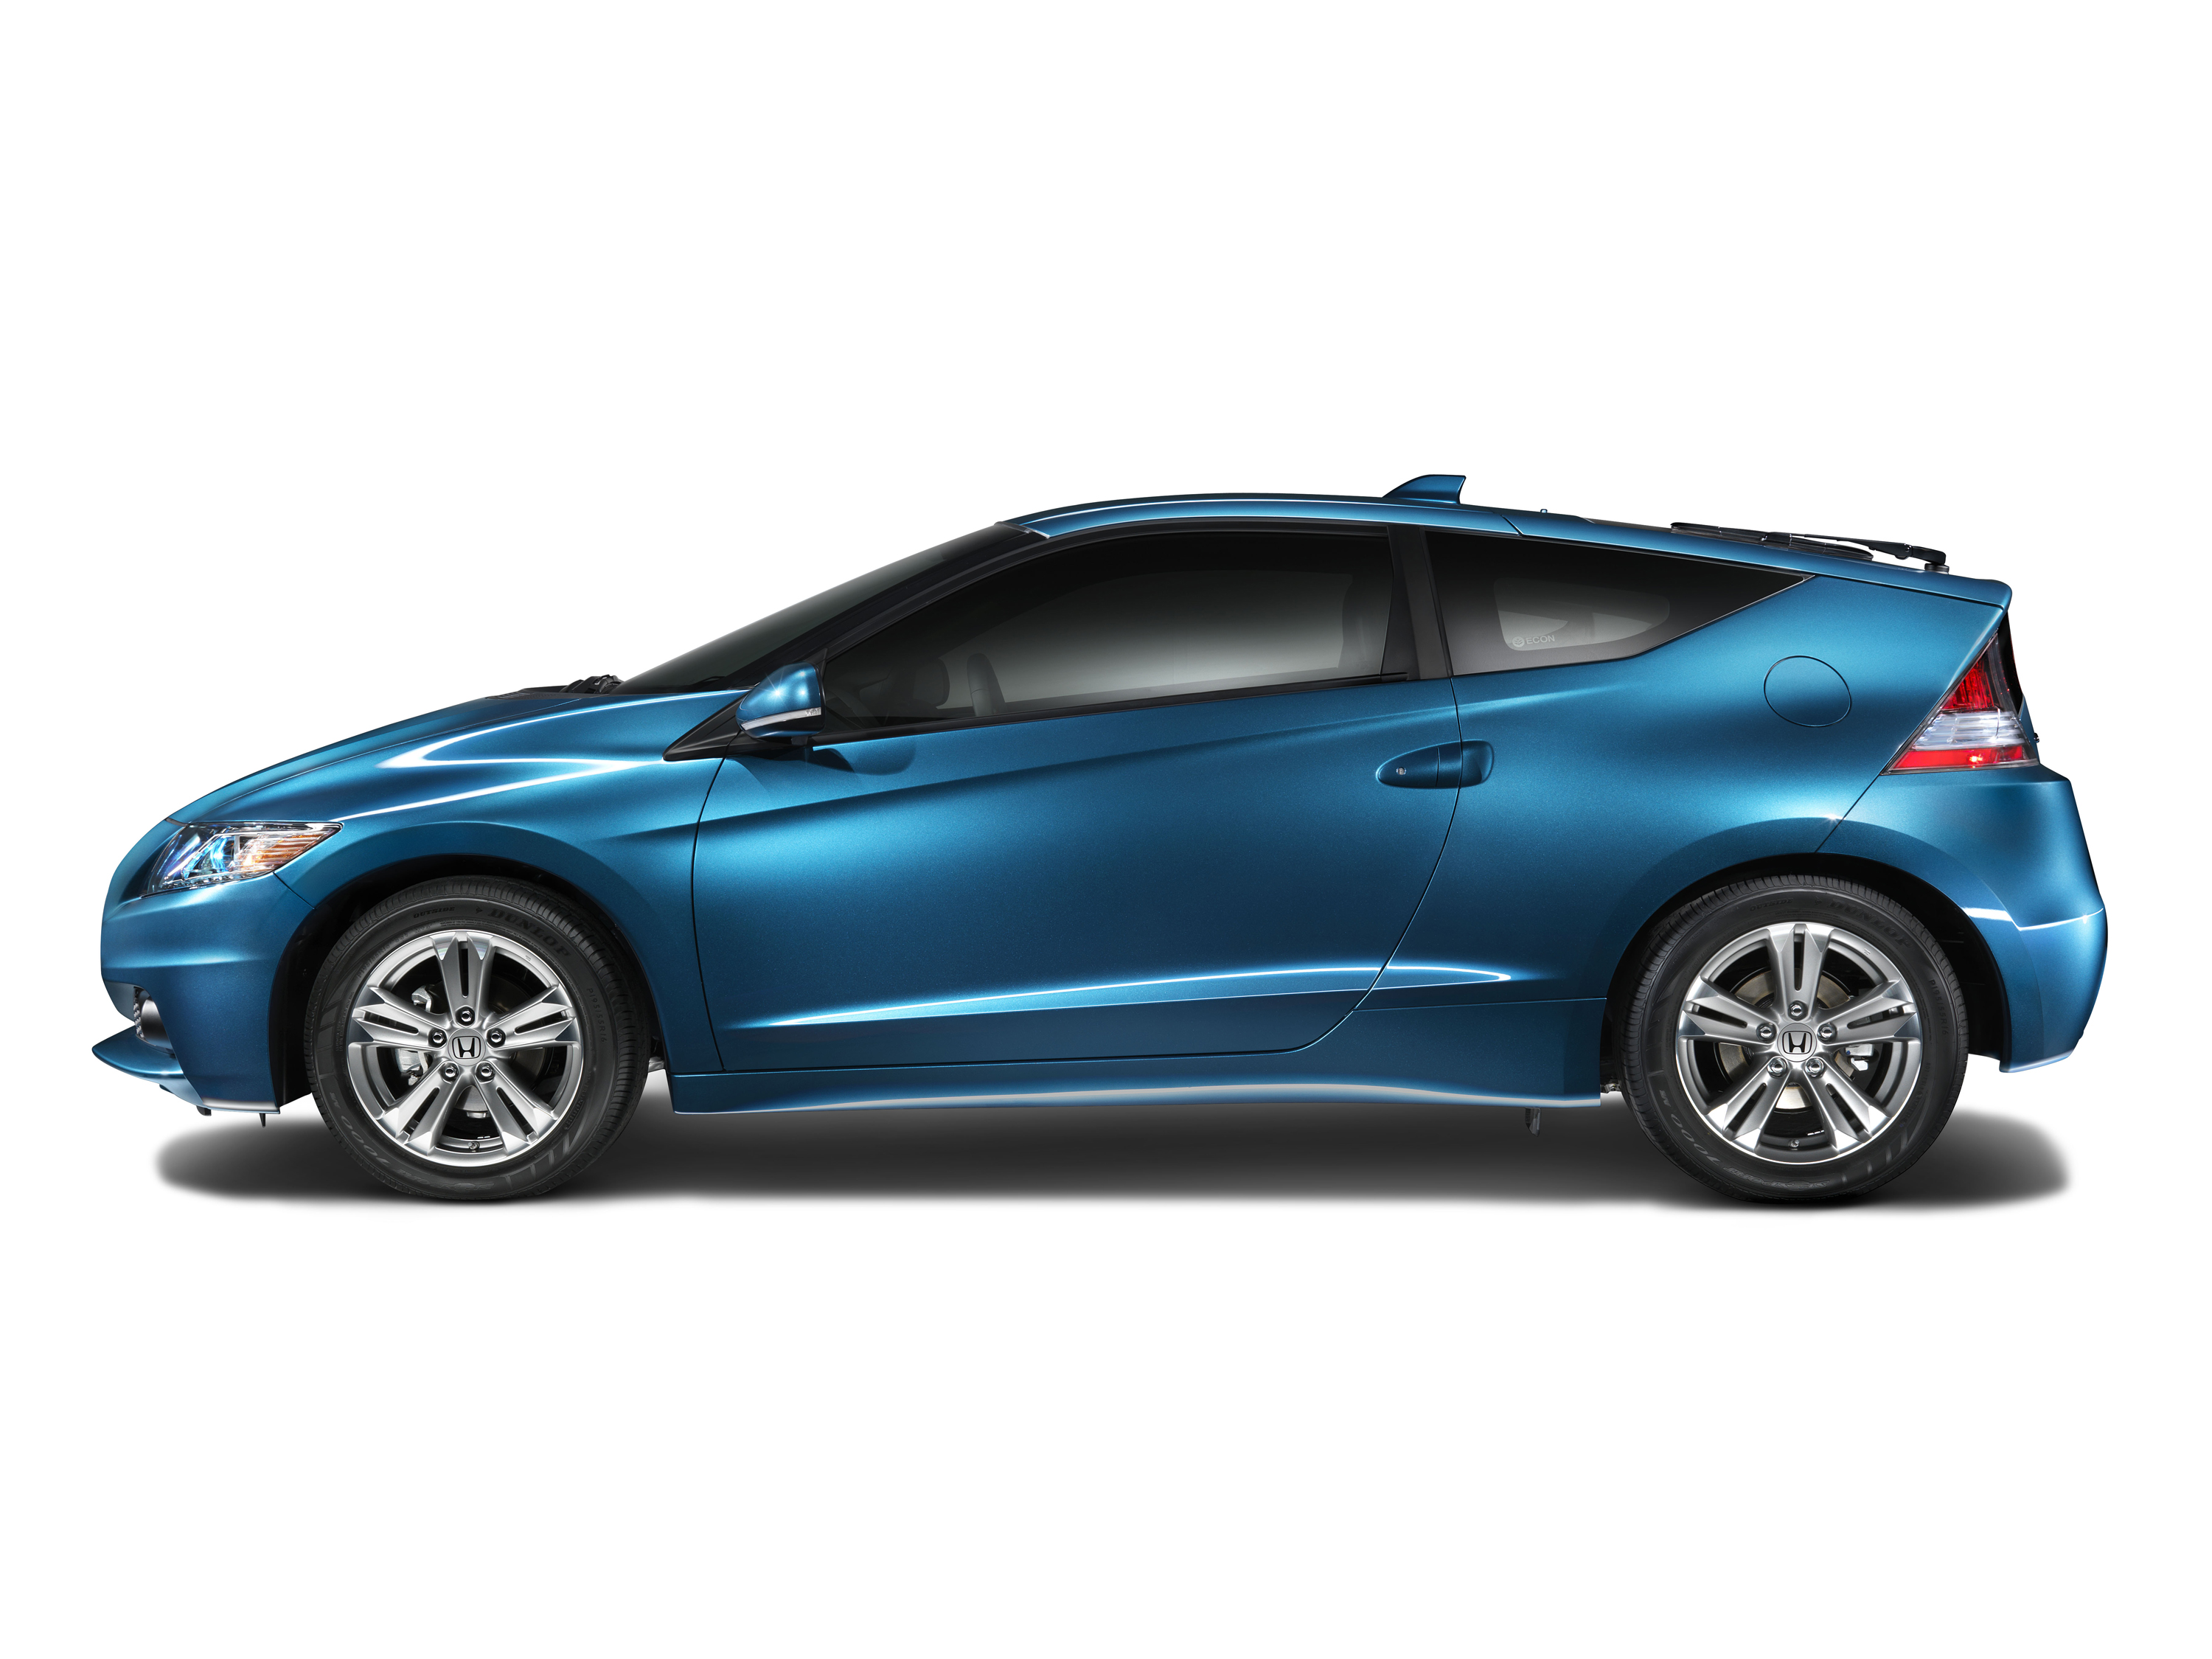 2015 Honda CR-Z Detailed, Price Hikes $150 Over the 2014 Model Year - autoevolution